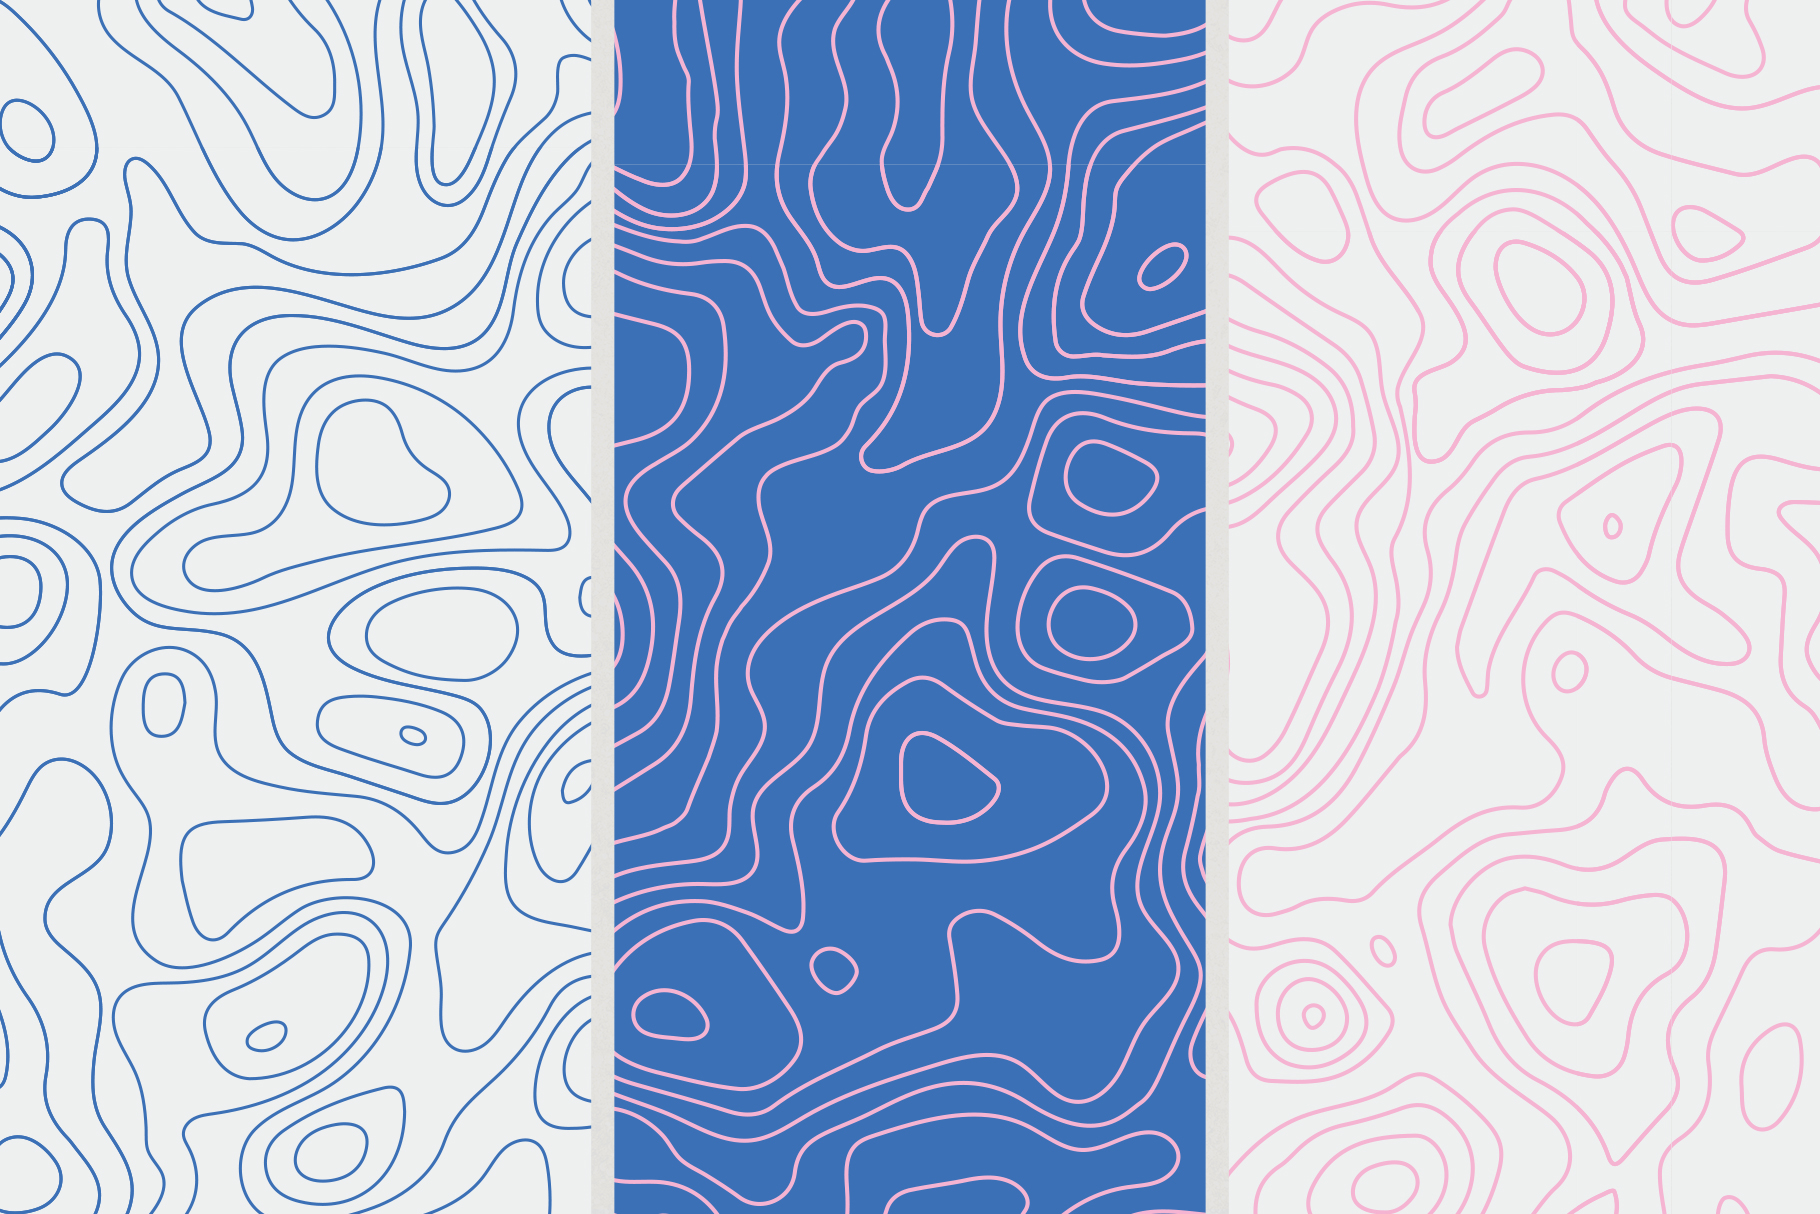 9 Topographic Maps Seamless Patterns example image 5